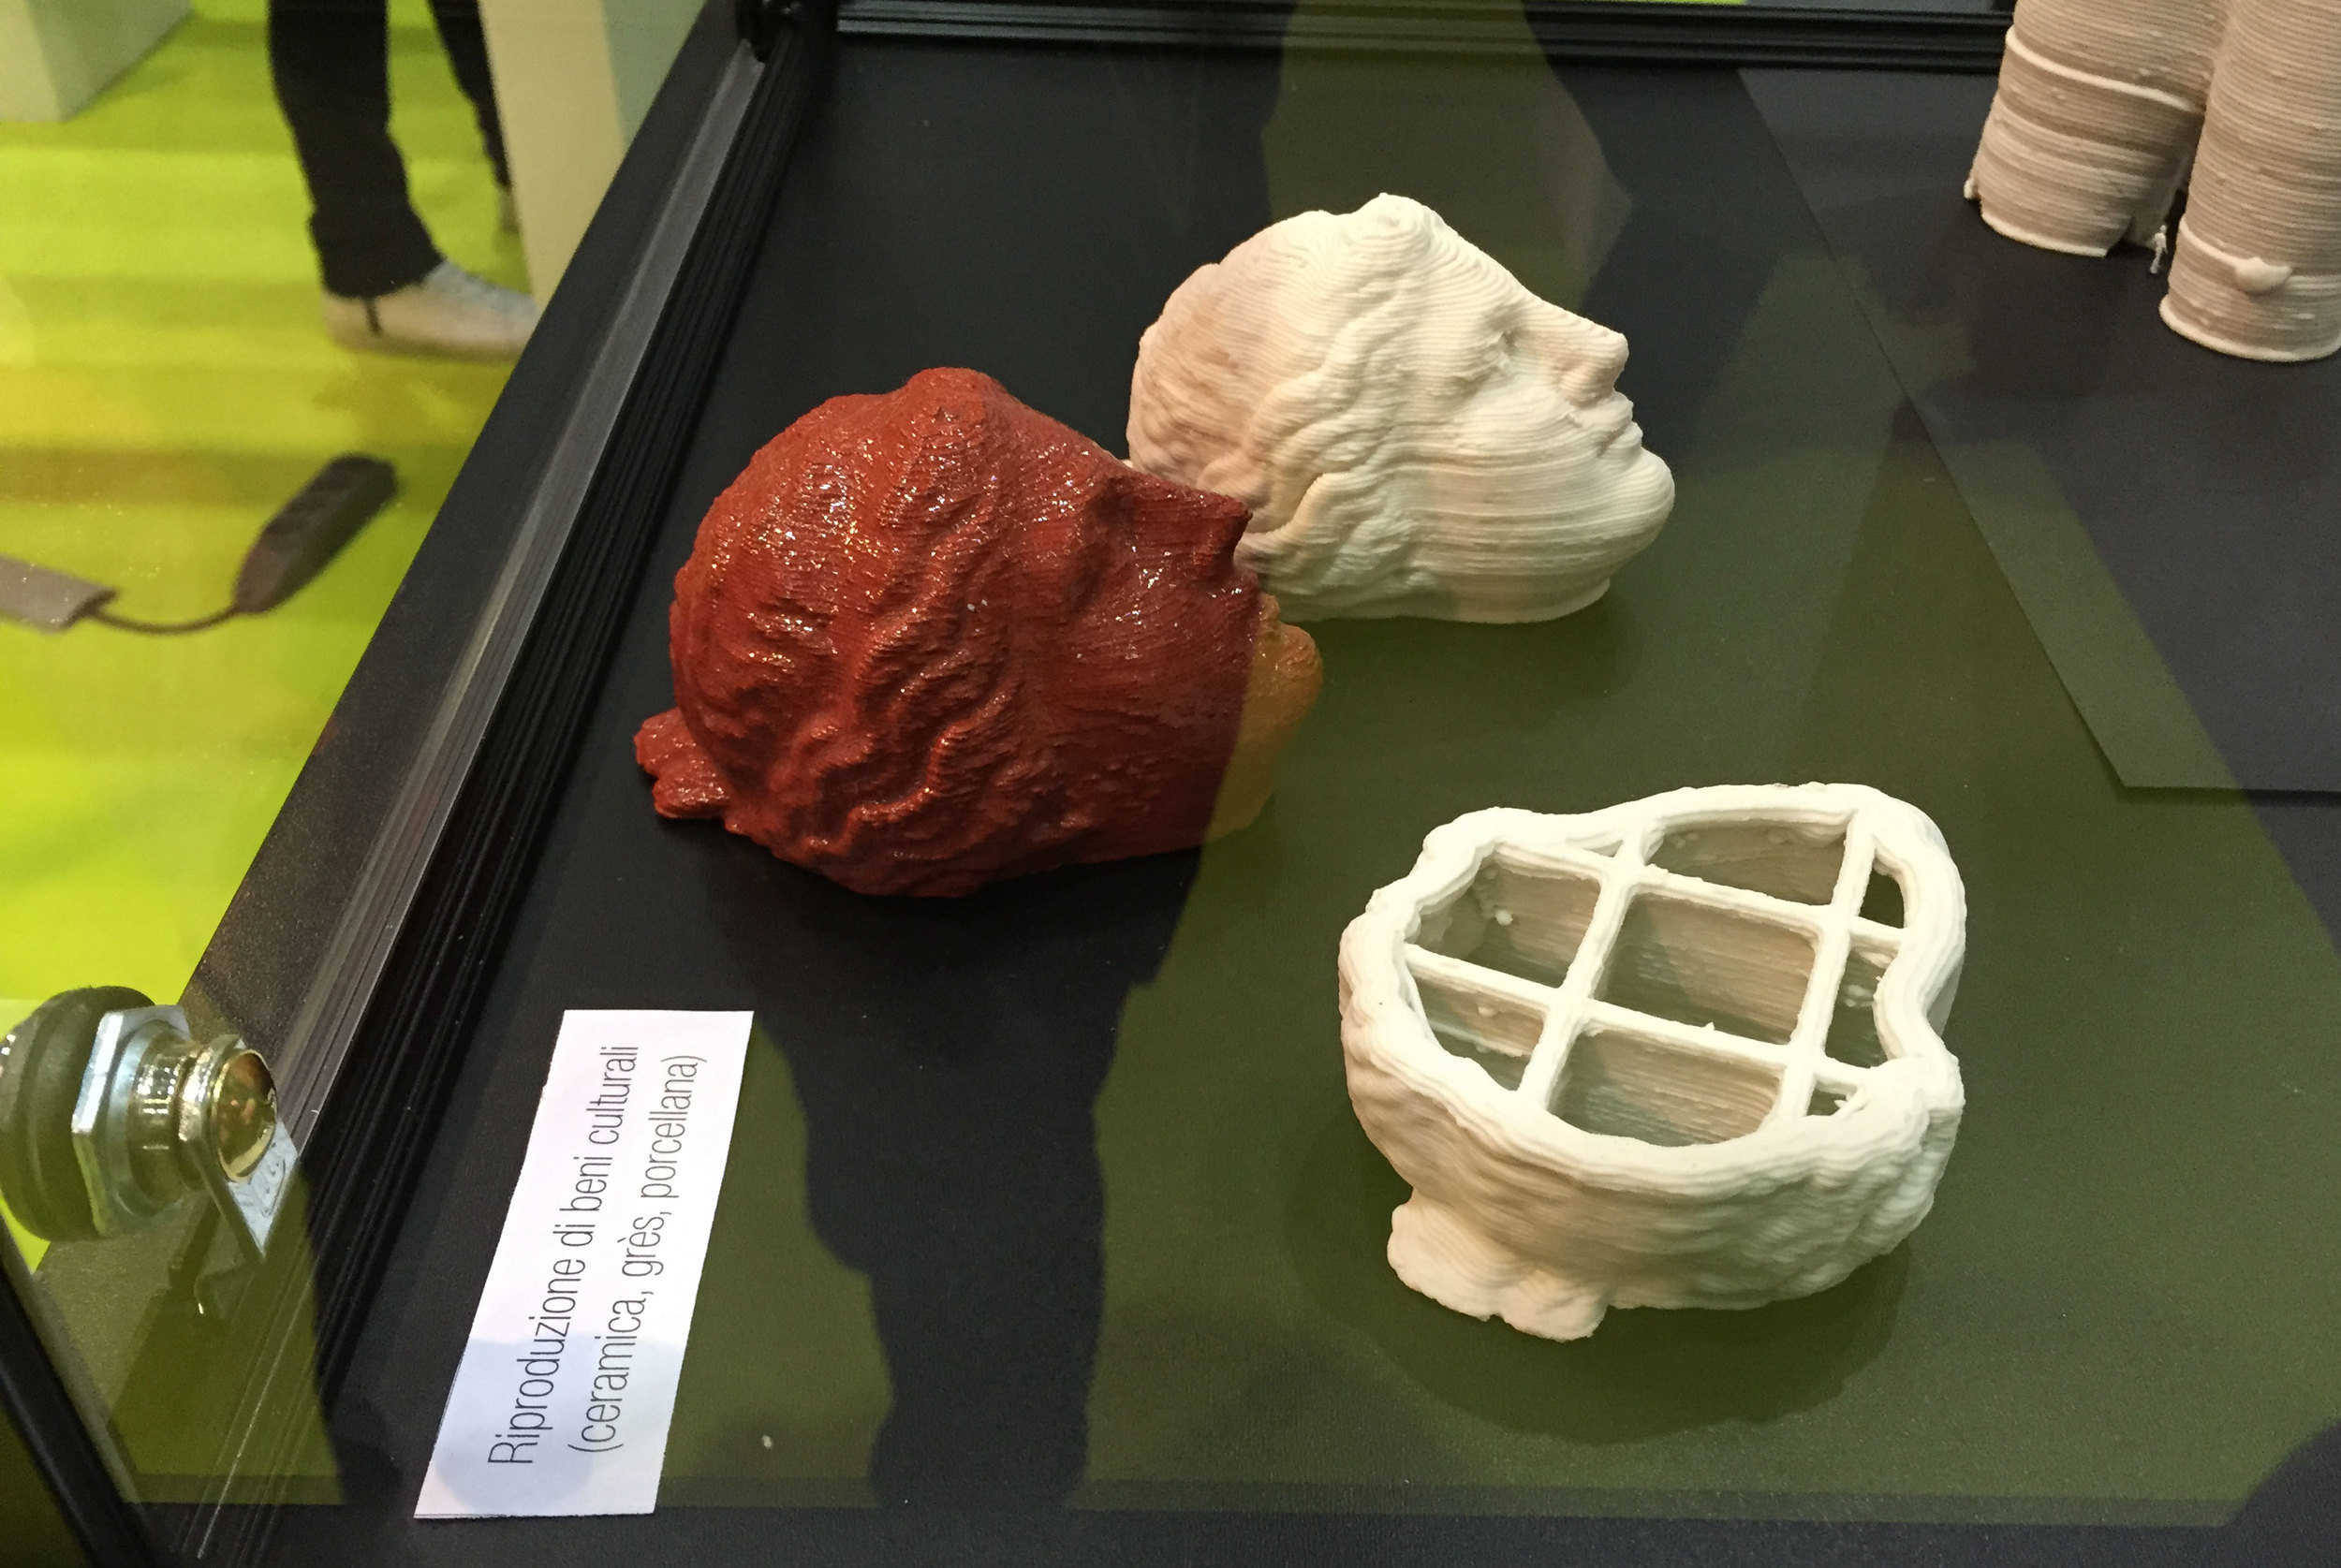 3DPrint Hub: research work in the field of new materials for 3D printing   by Più LAB of Politecnico di Milano